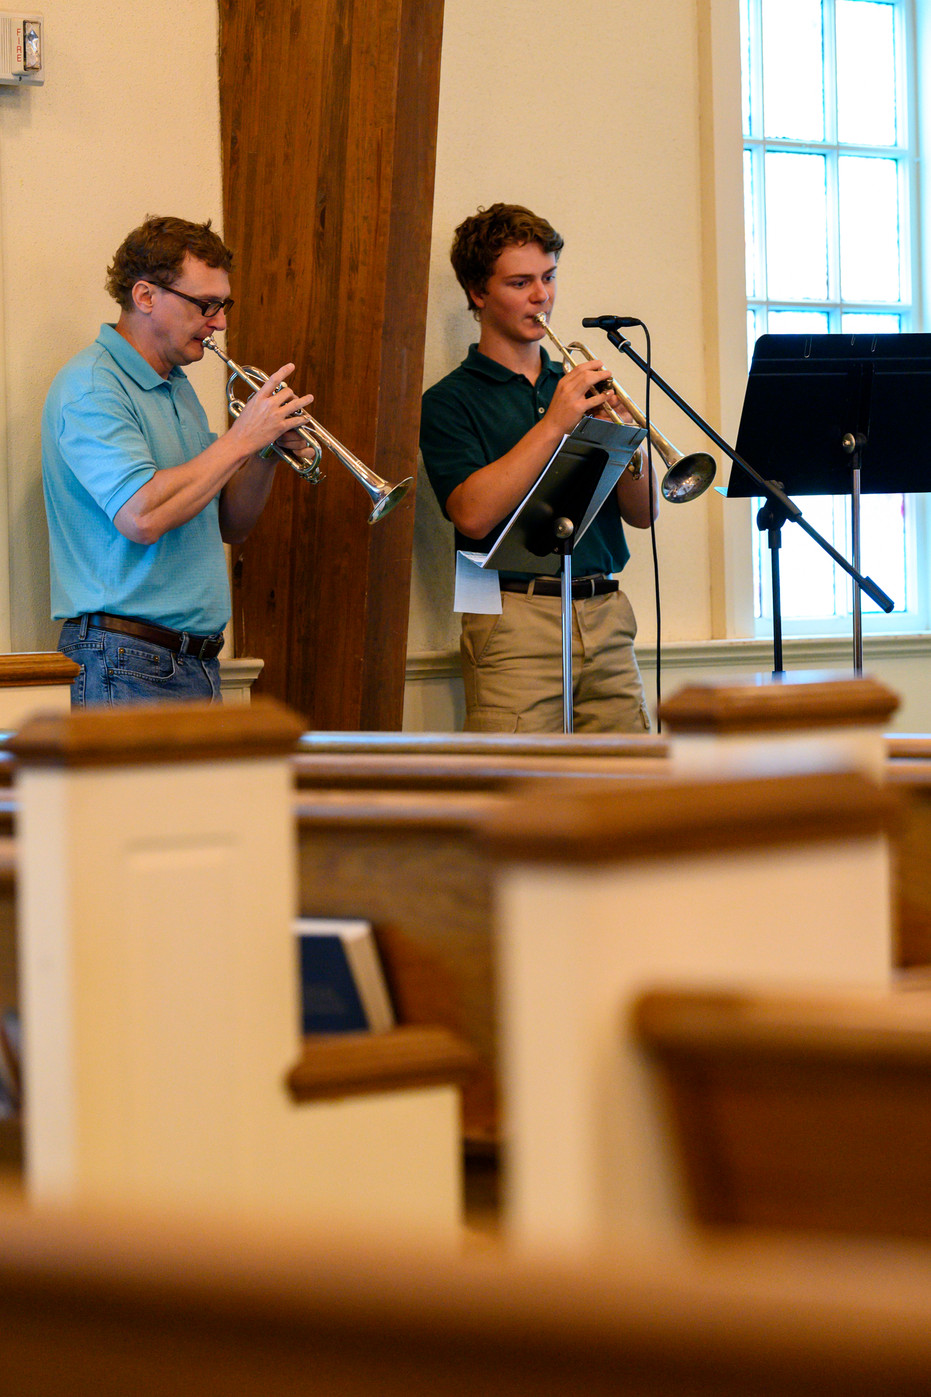 John Bailey plays trumpet with his son Nathan at Winterville First Baptist Church in Winterville, Georgia on Sunday, May 24, 2020. A special microphone broadcasts the music to live steam channels.